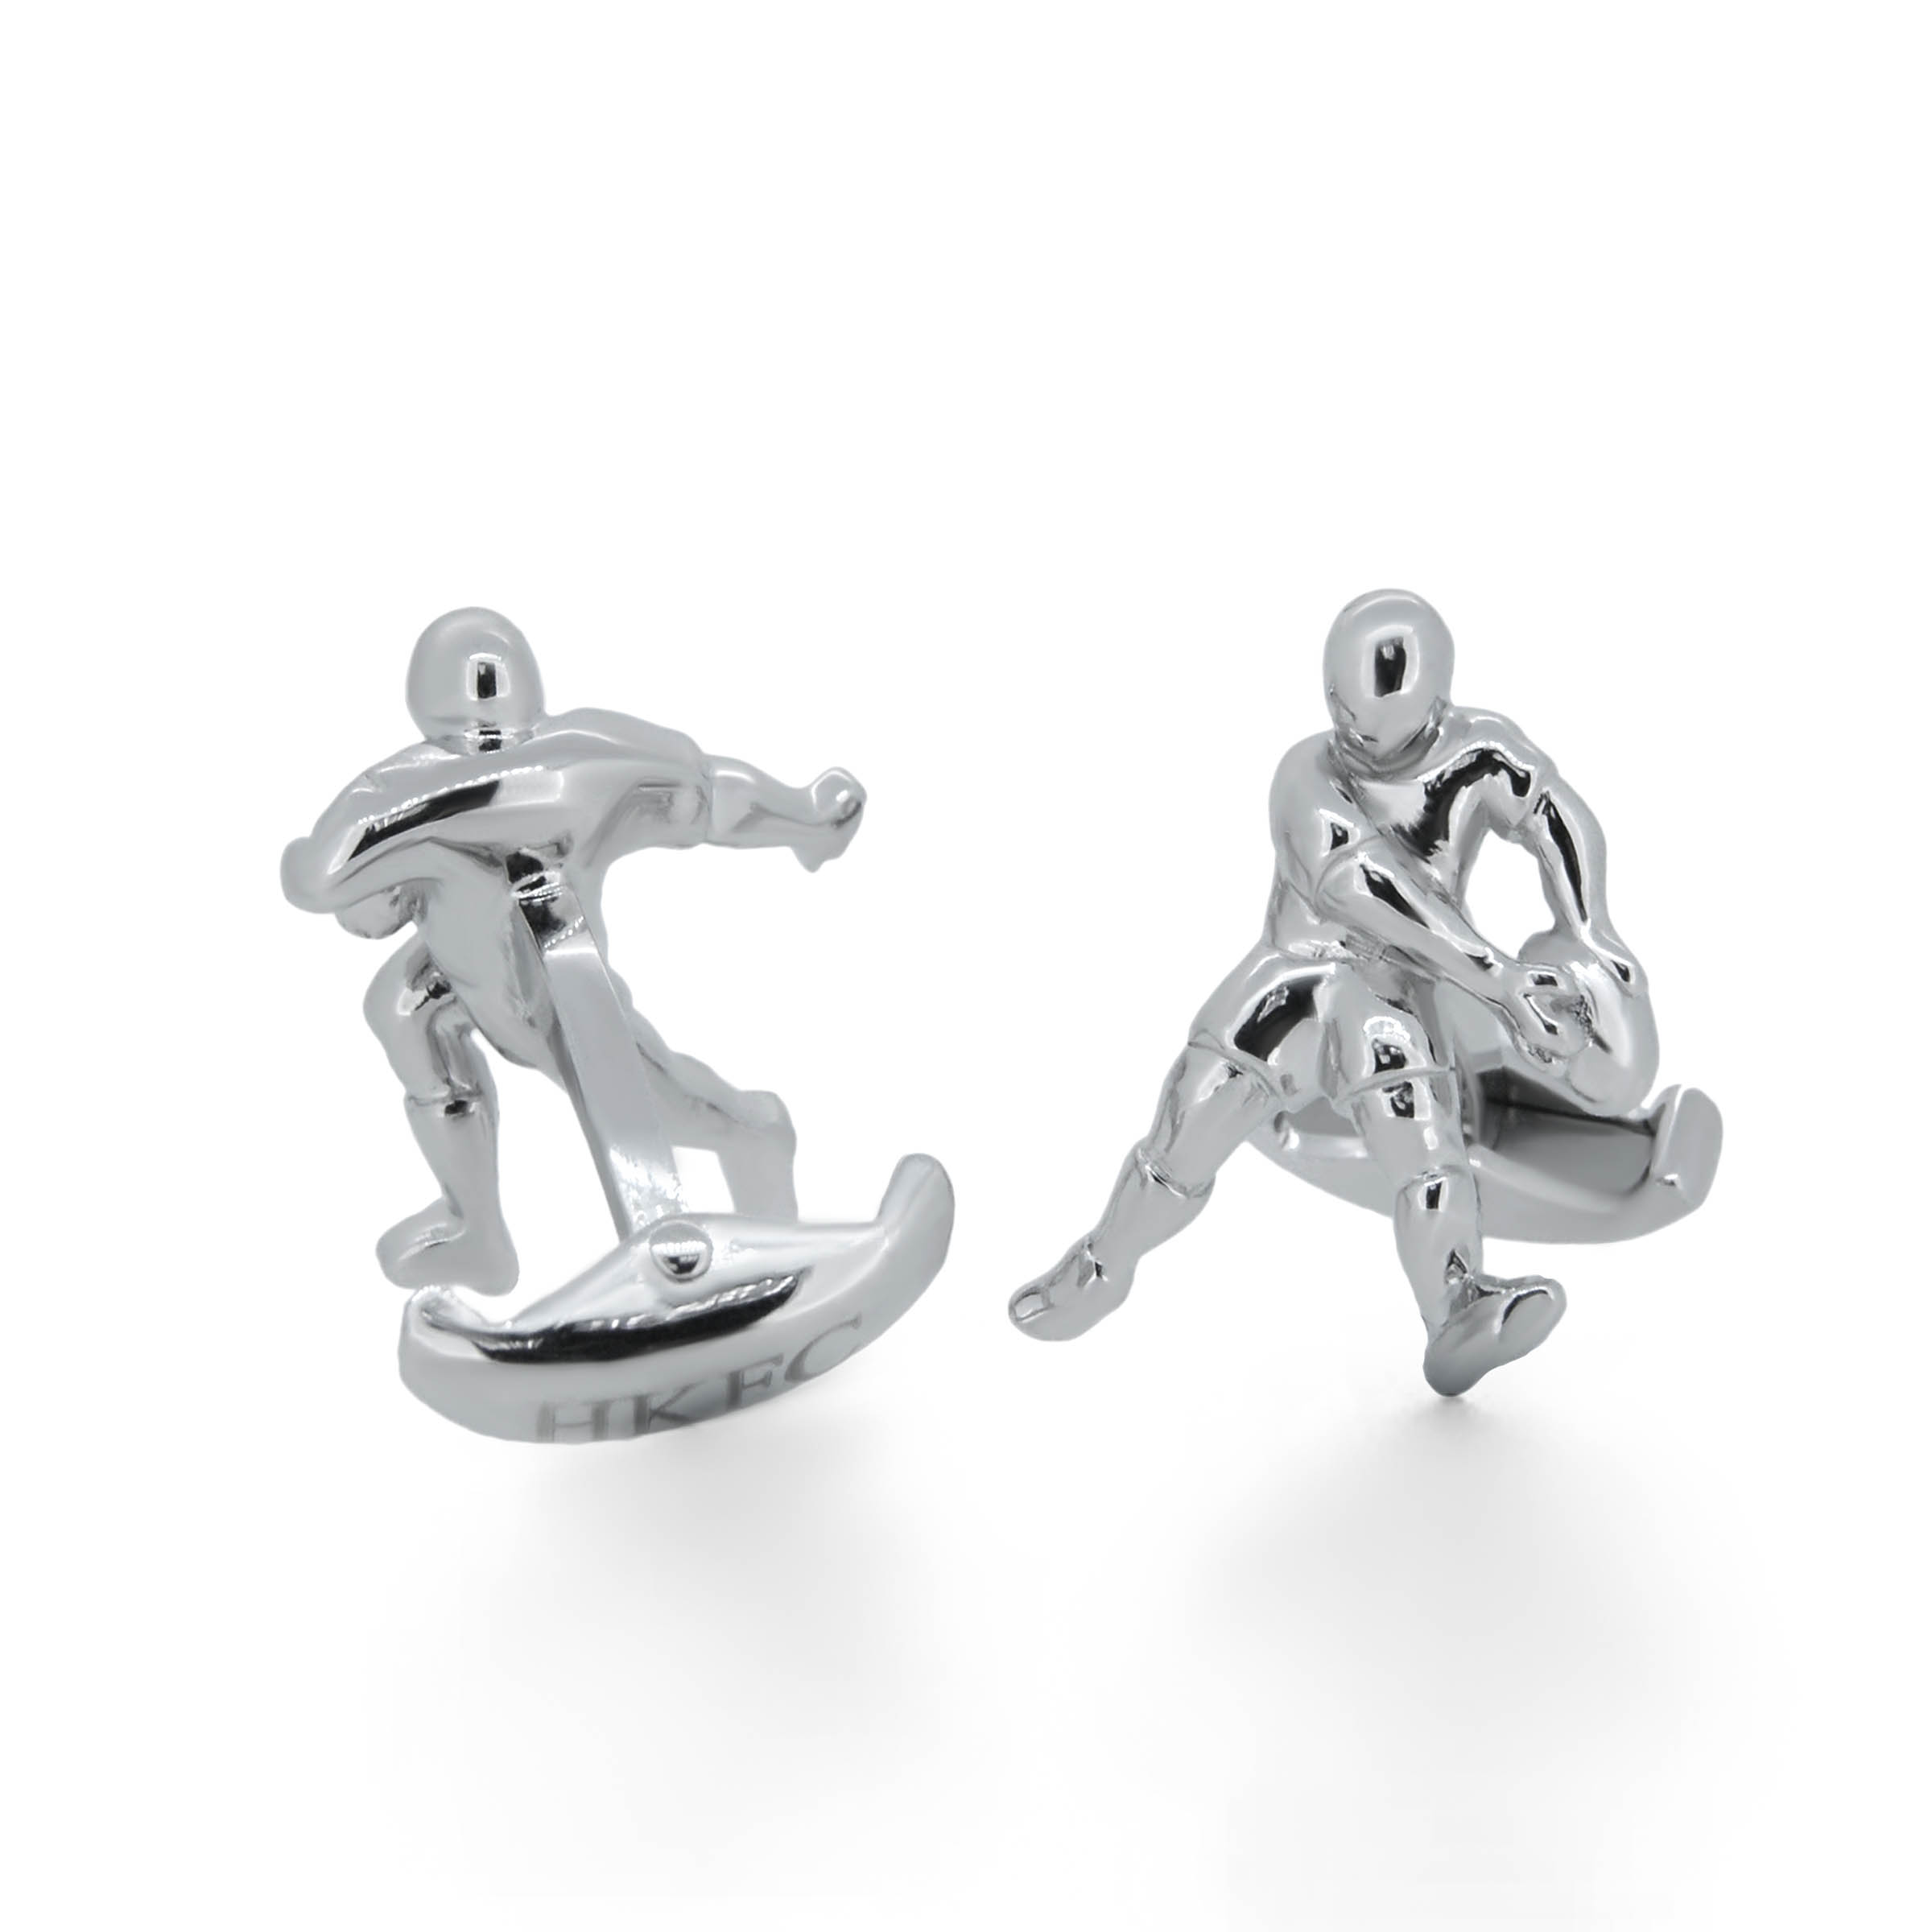 rugby cufflinks- haywards of hong kong